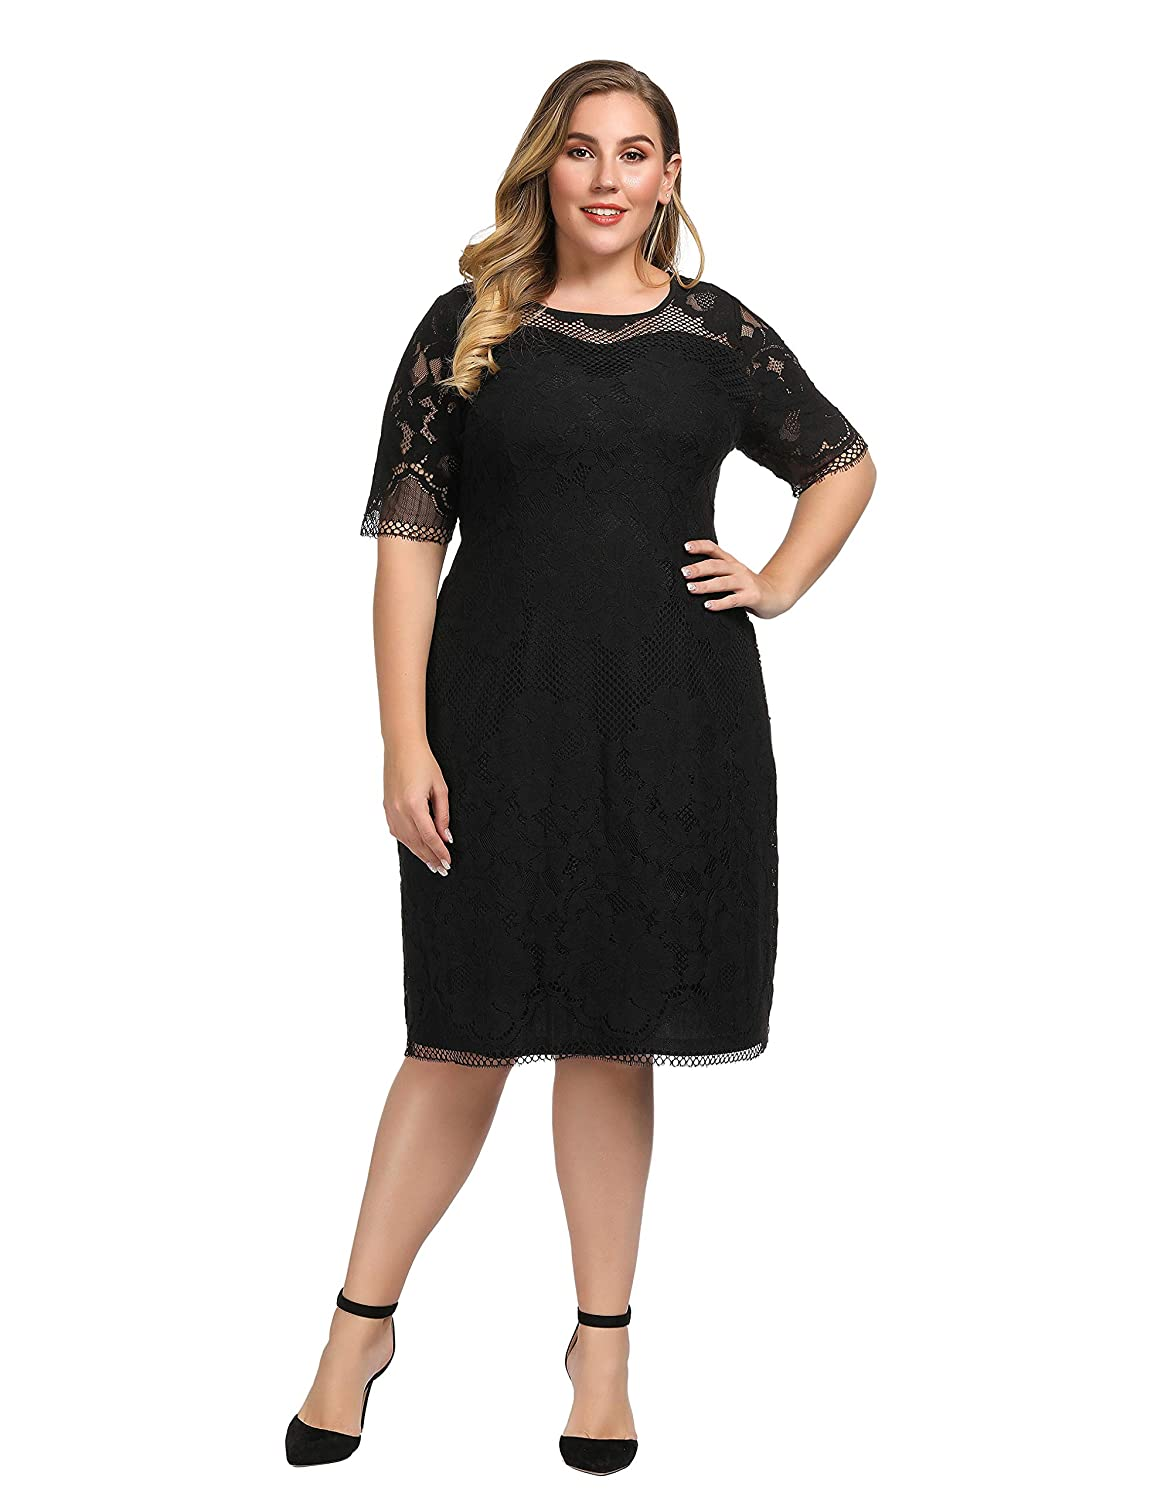 732796696be101 Chicwe Women's Plus Size Lined Floral Lace Dress - Knee Length Casual Party  Cocktail Dress at Amazon Women's Clothing store: